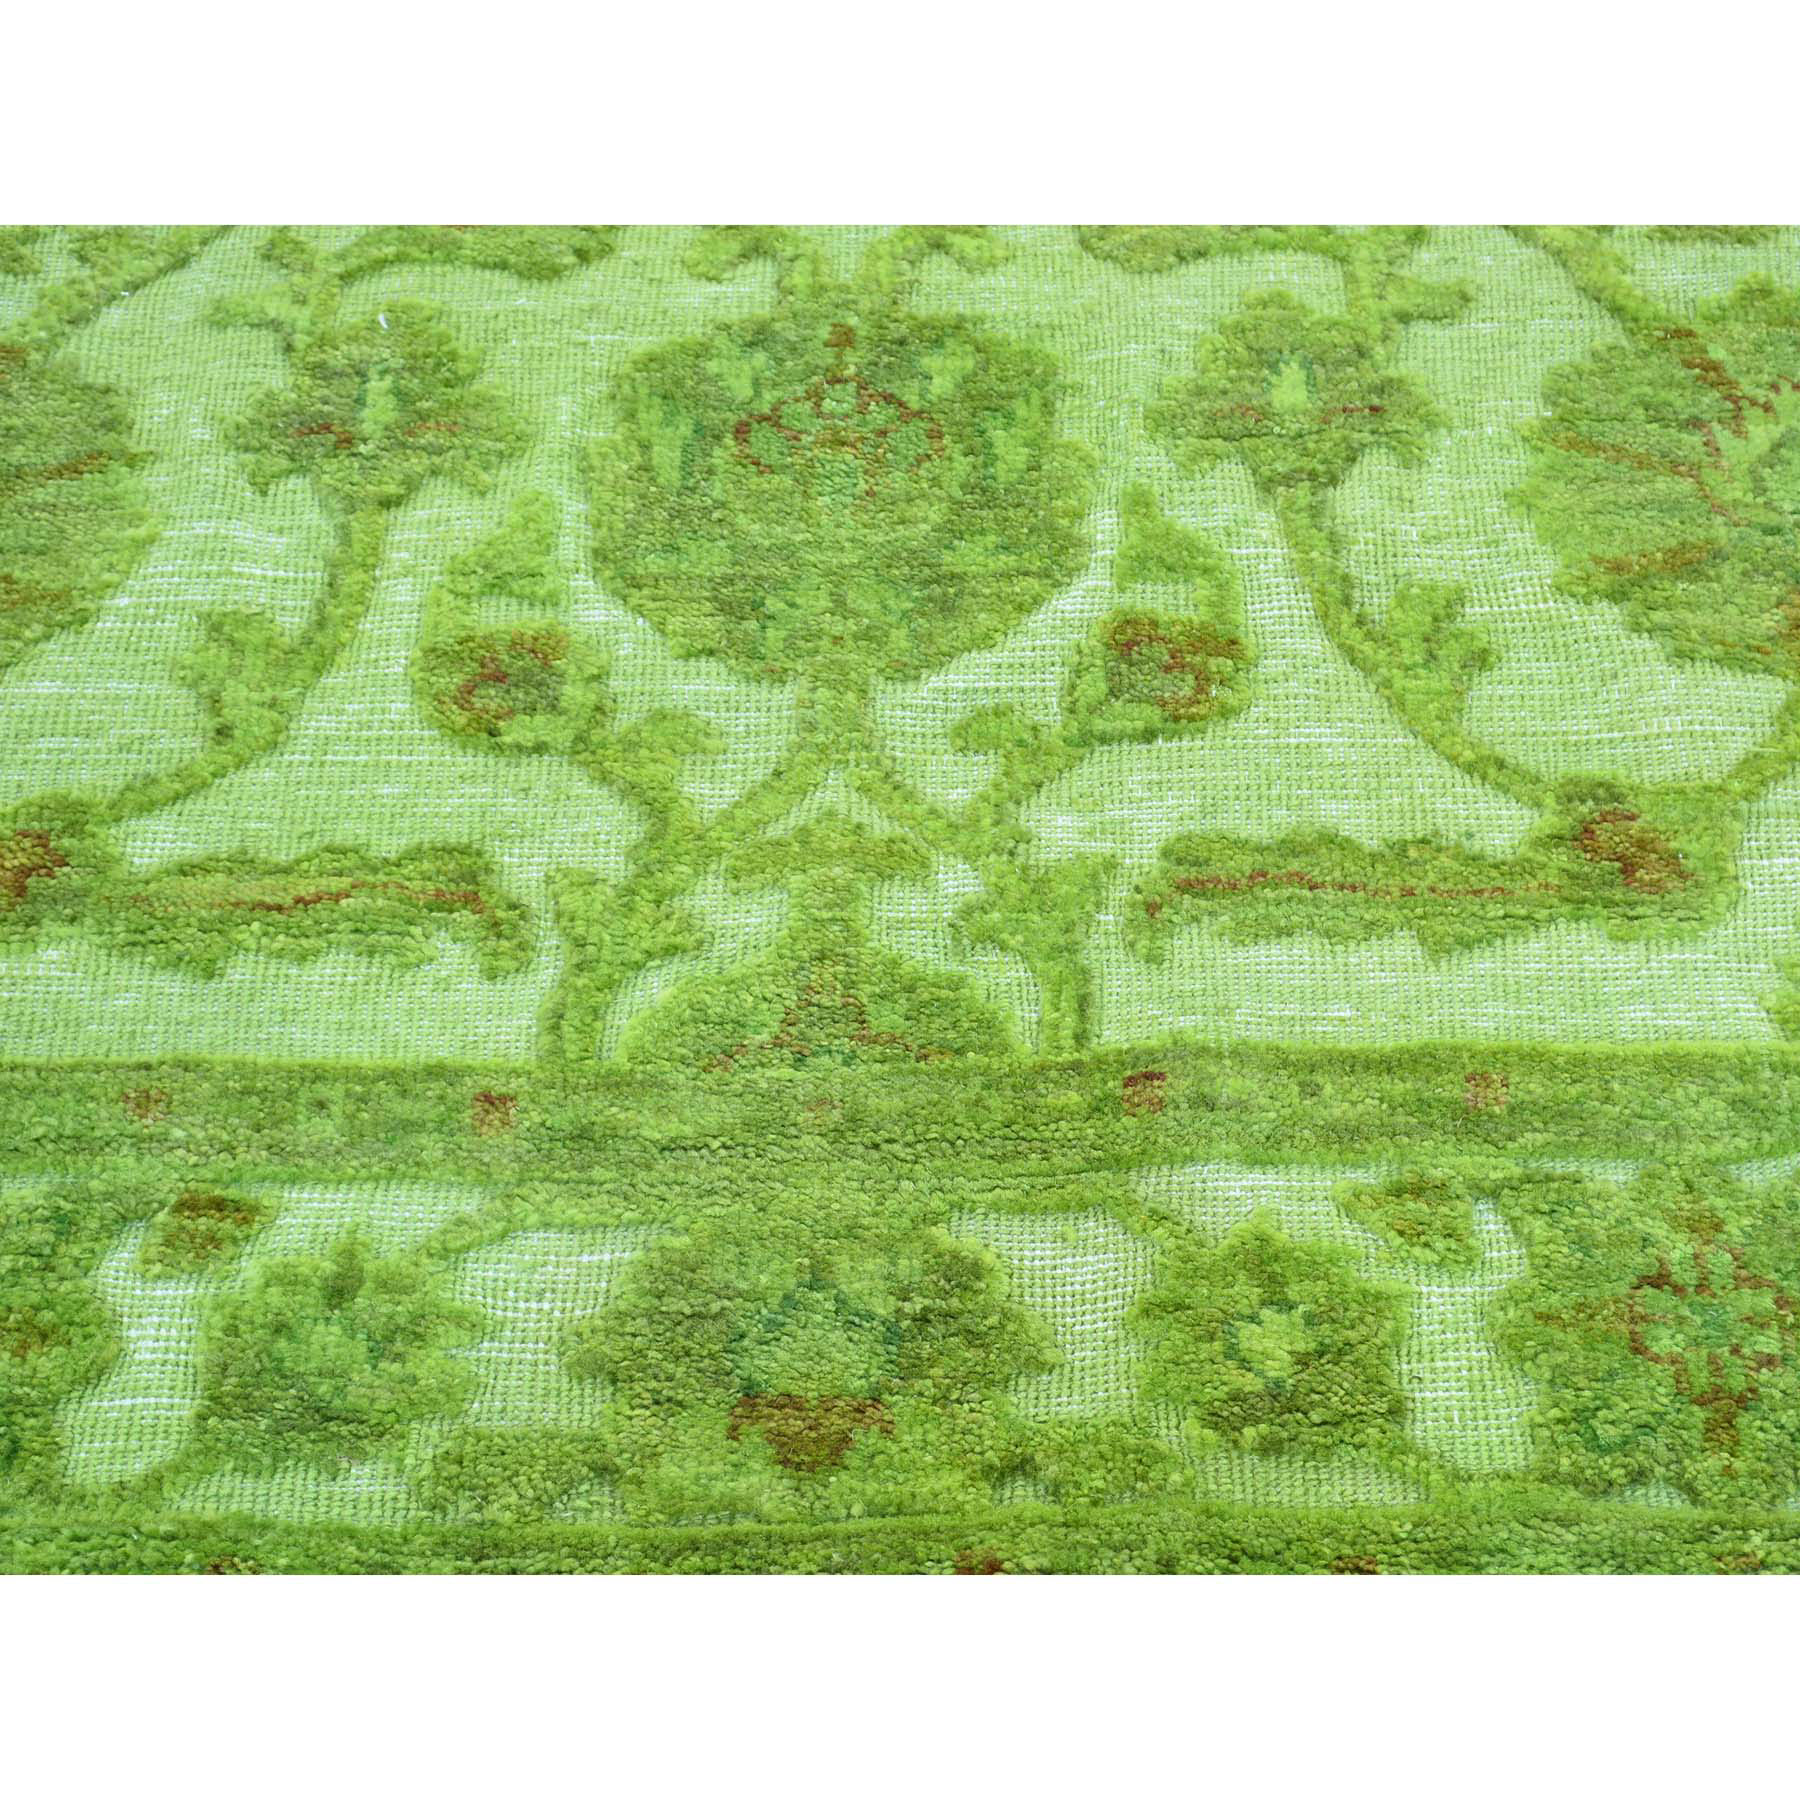 4-2 x6-2  Hand-Knotted Overdyed Hi and Low Pile Pure Wool Oriental Rug